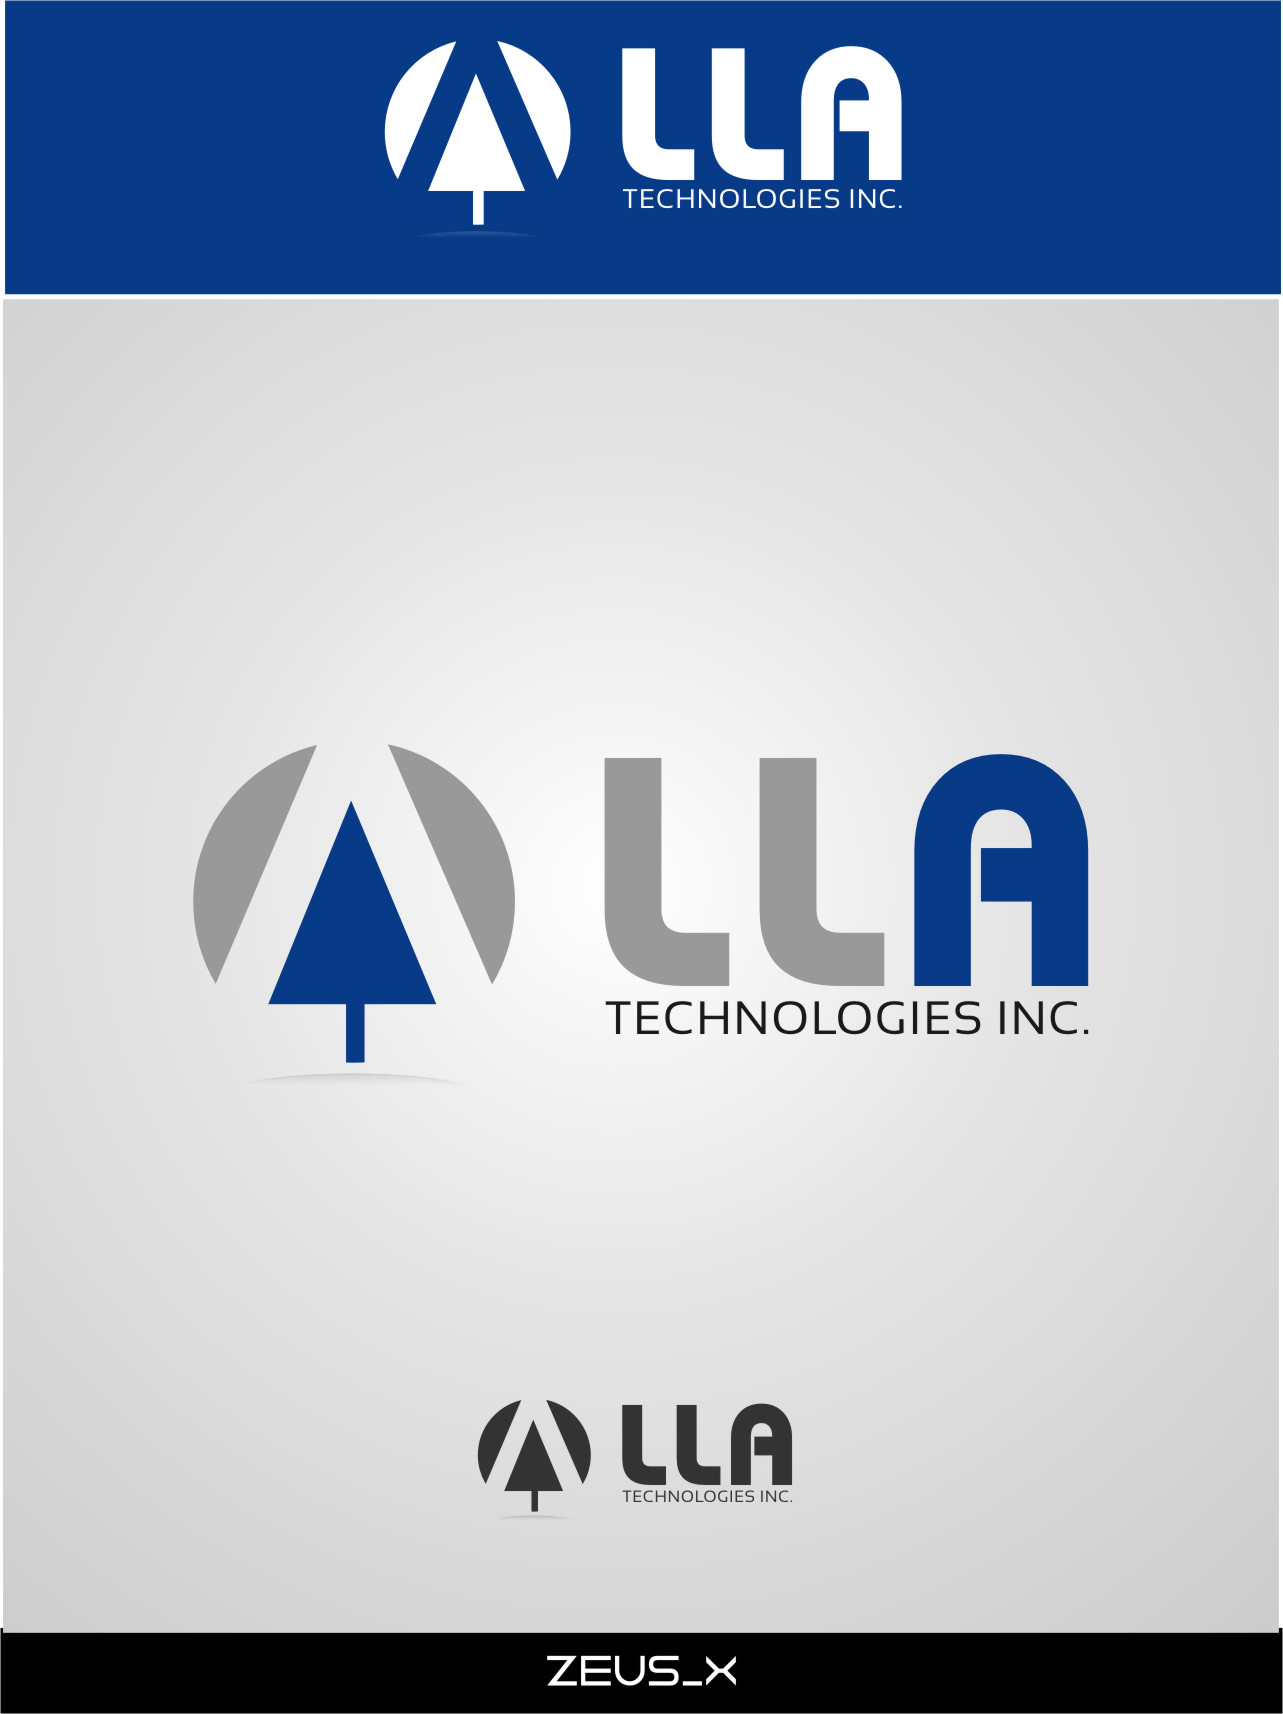 Logo Design by Ngepet_art - Entry No. 158 in the Logo Design Contest Inspiring Logo Design for LLA Technologies Inc..